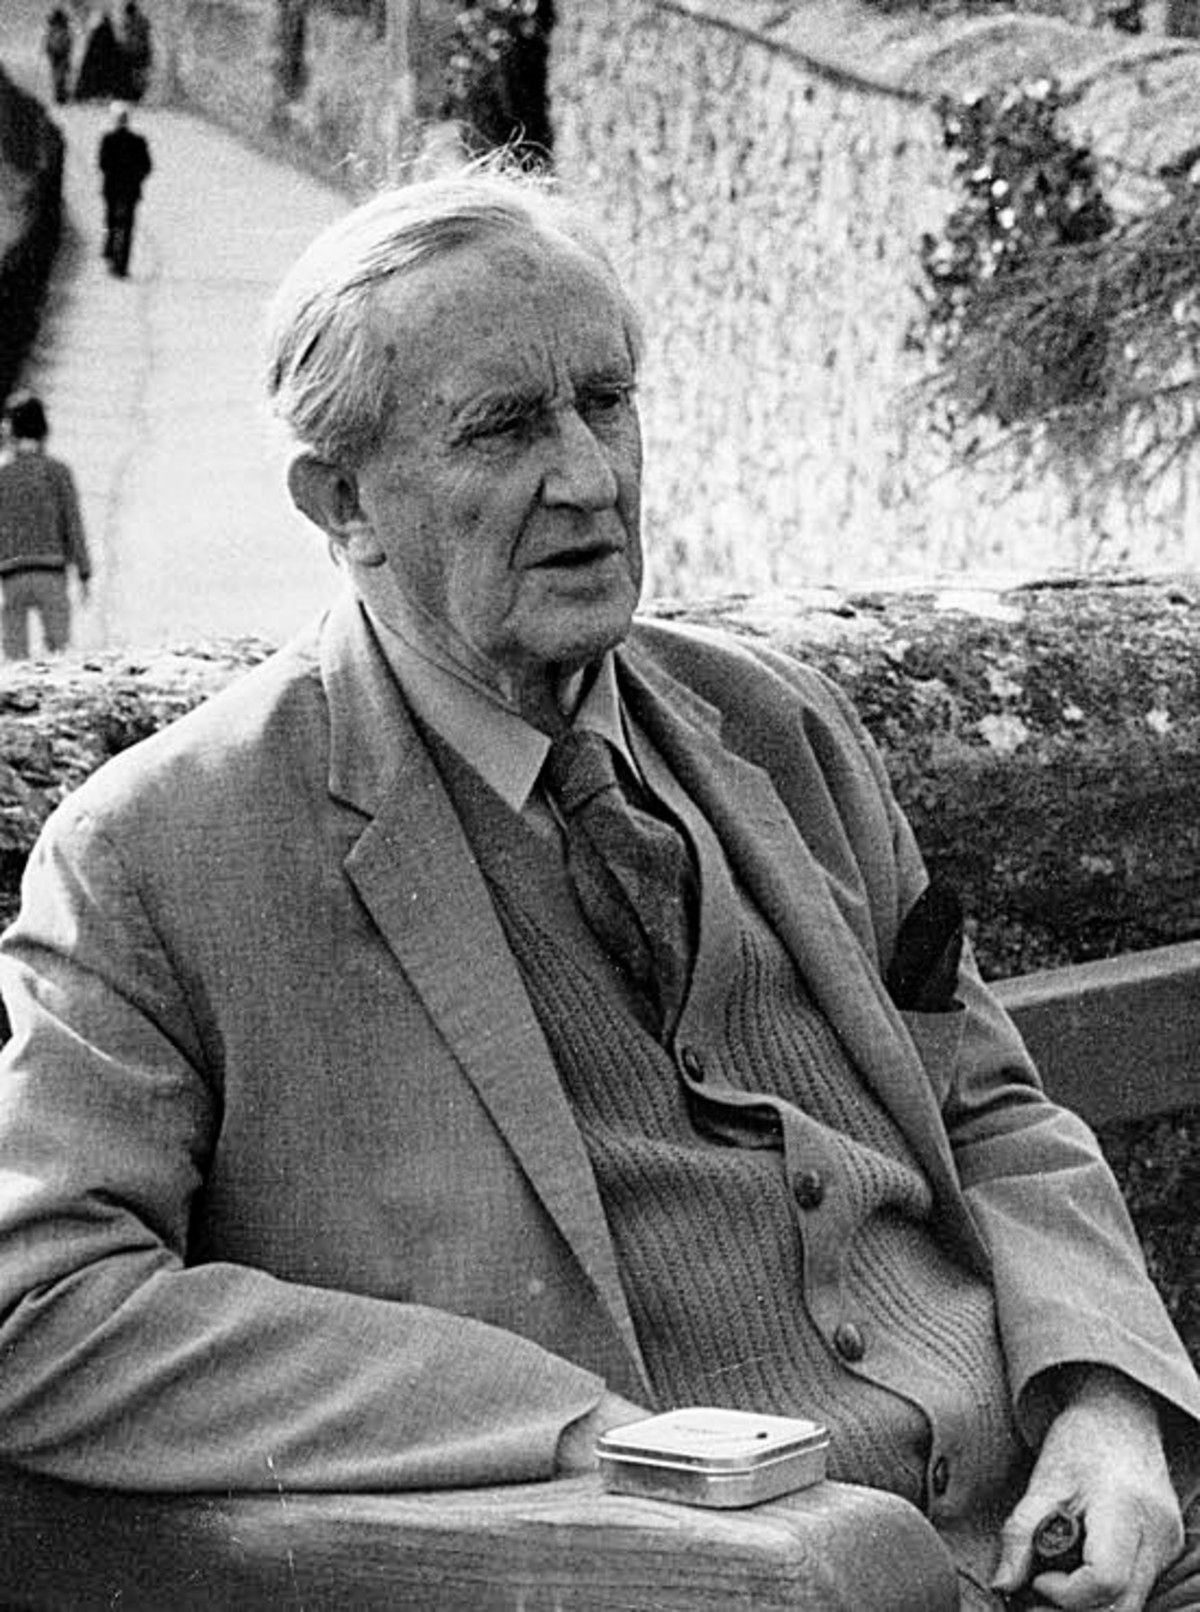 J R Smith Links Black Friday To Slavery On Instagram: Jrr Tolkien Oxford Images